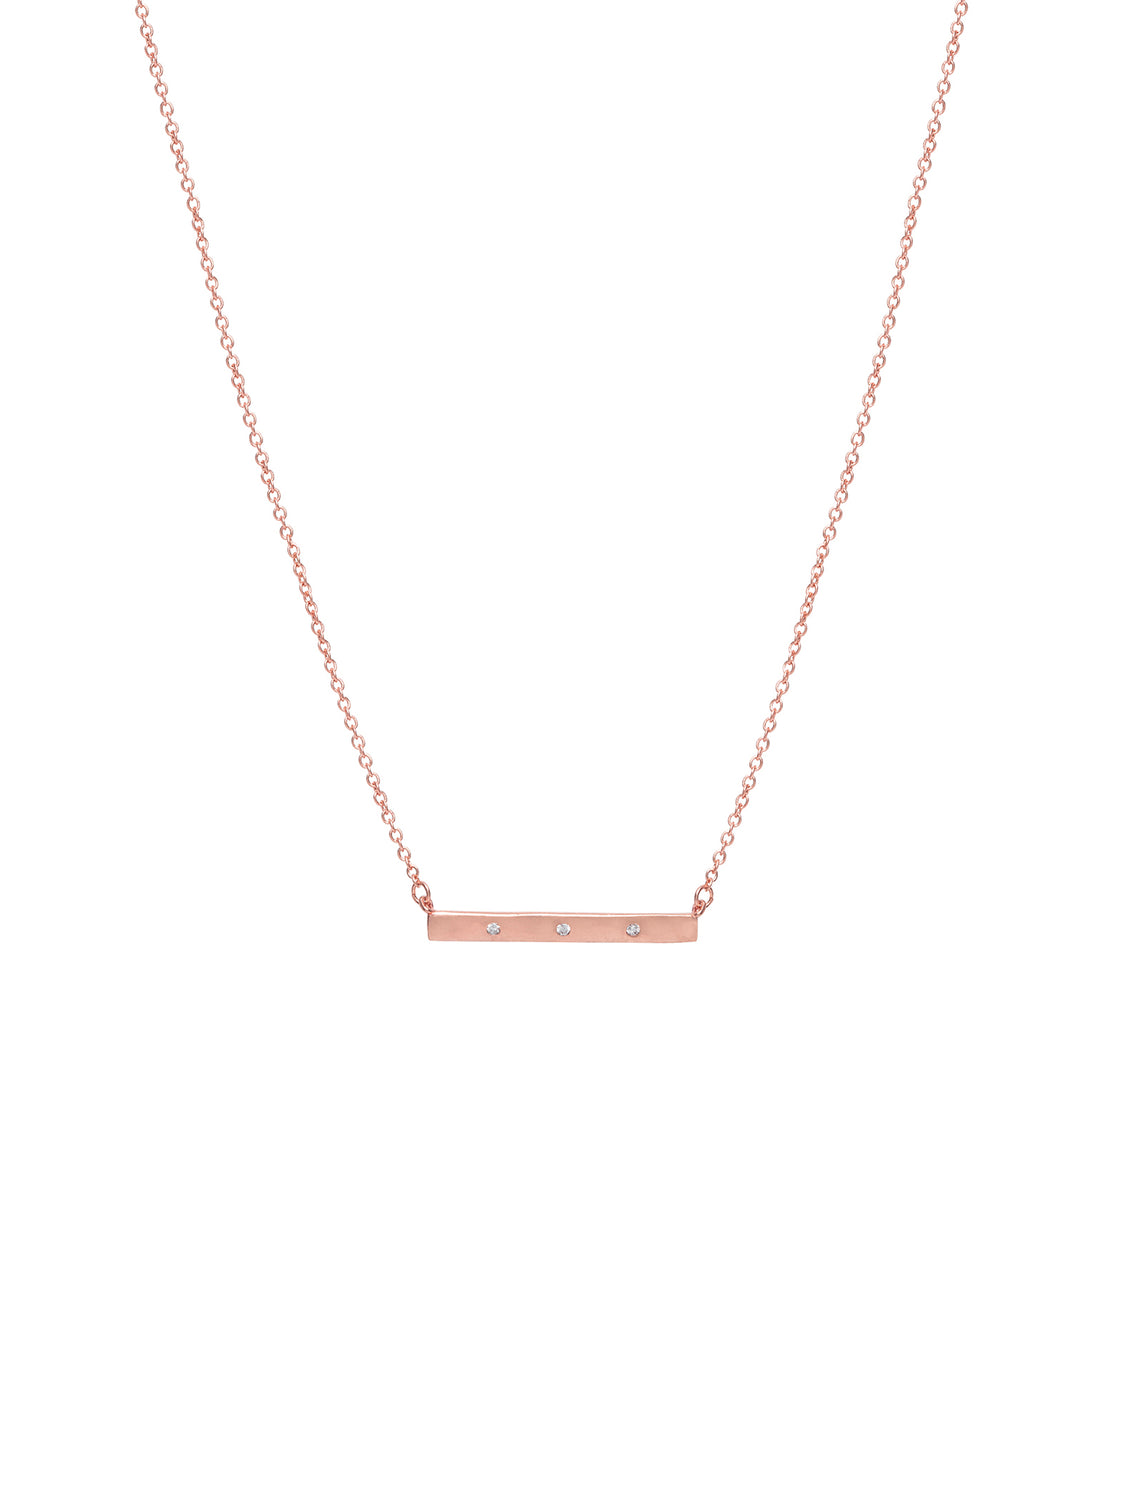 Nicole Fendel Asha Necklace - The Artisan Storeroom